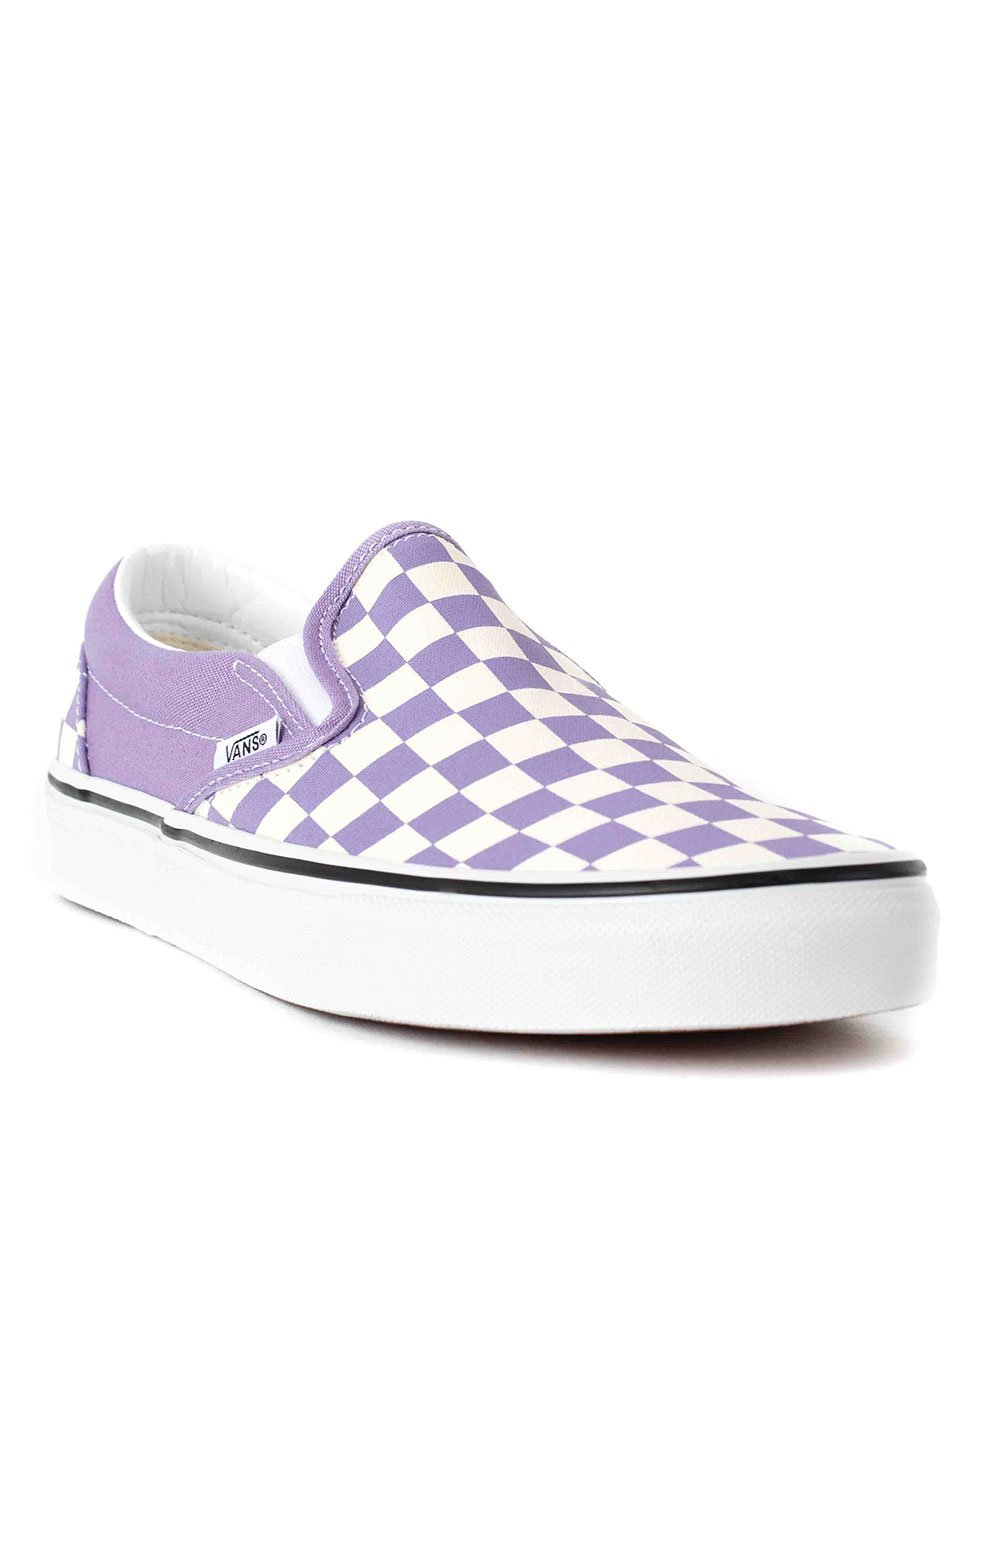 Checkerboard Classic Slip-On Shoes - Chalk Violet  3